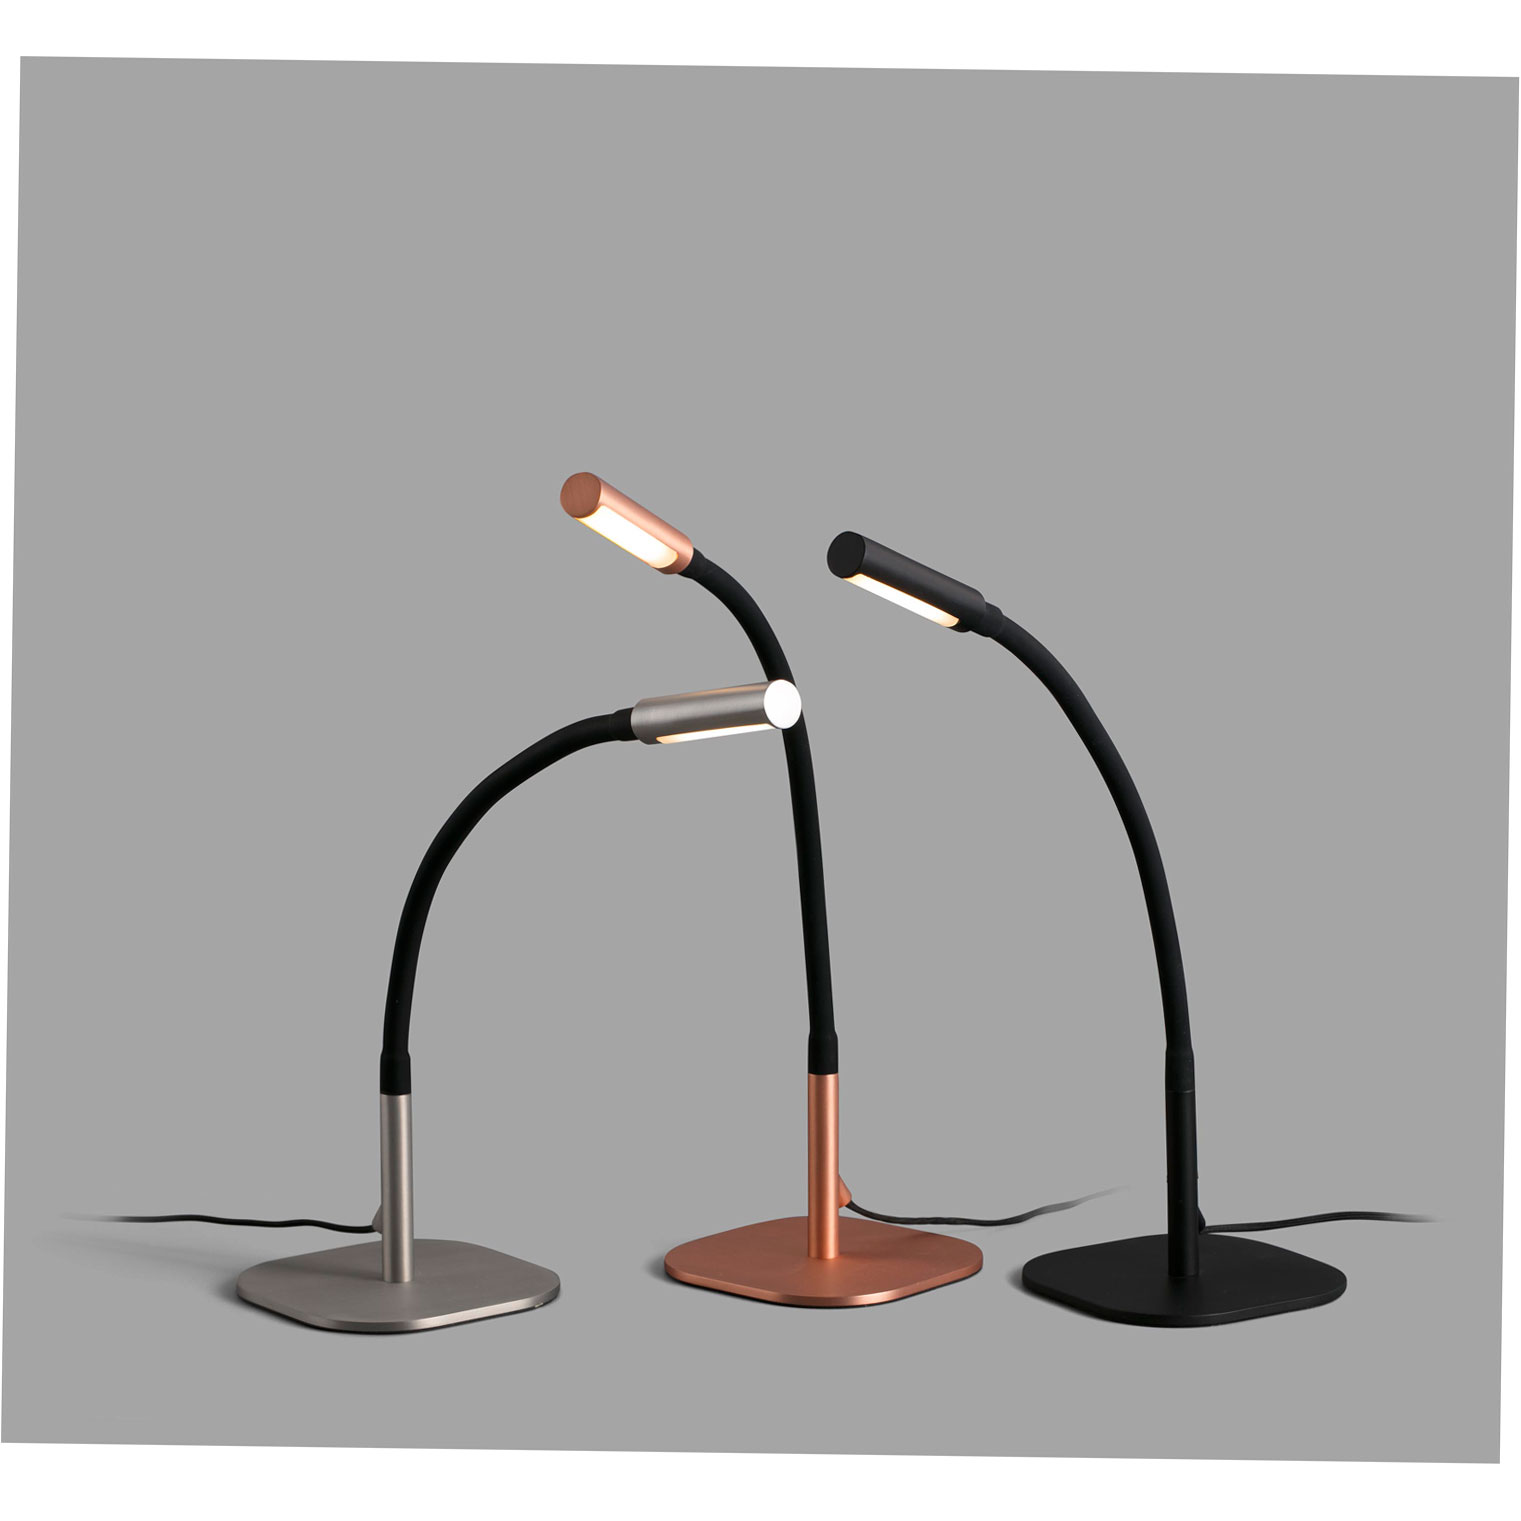 SERP TABLE LAMP BLACK LED 4W 3000K